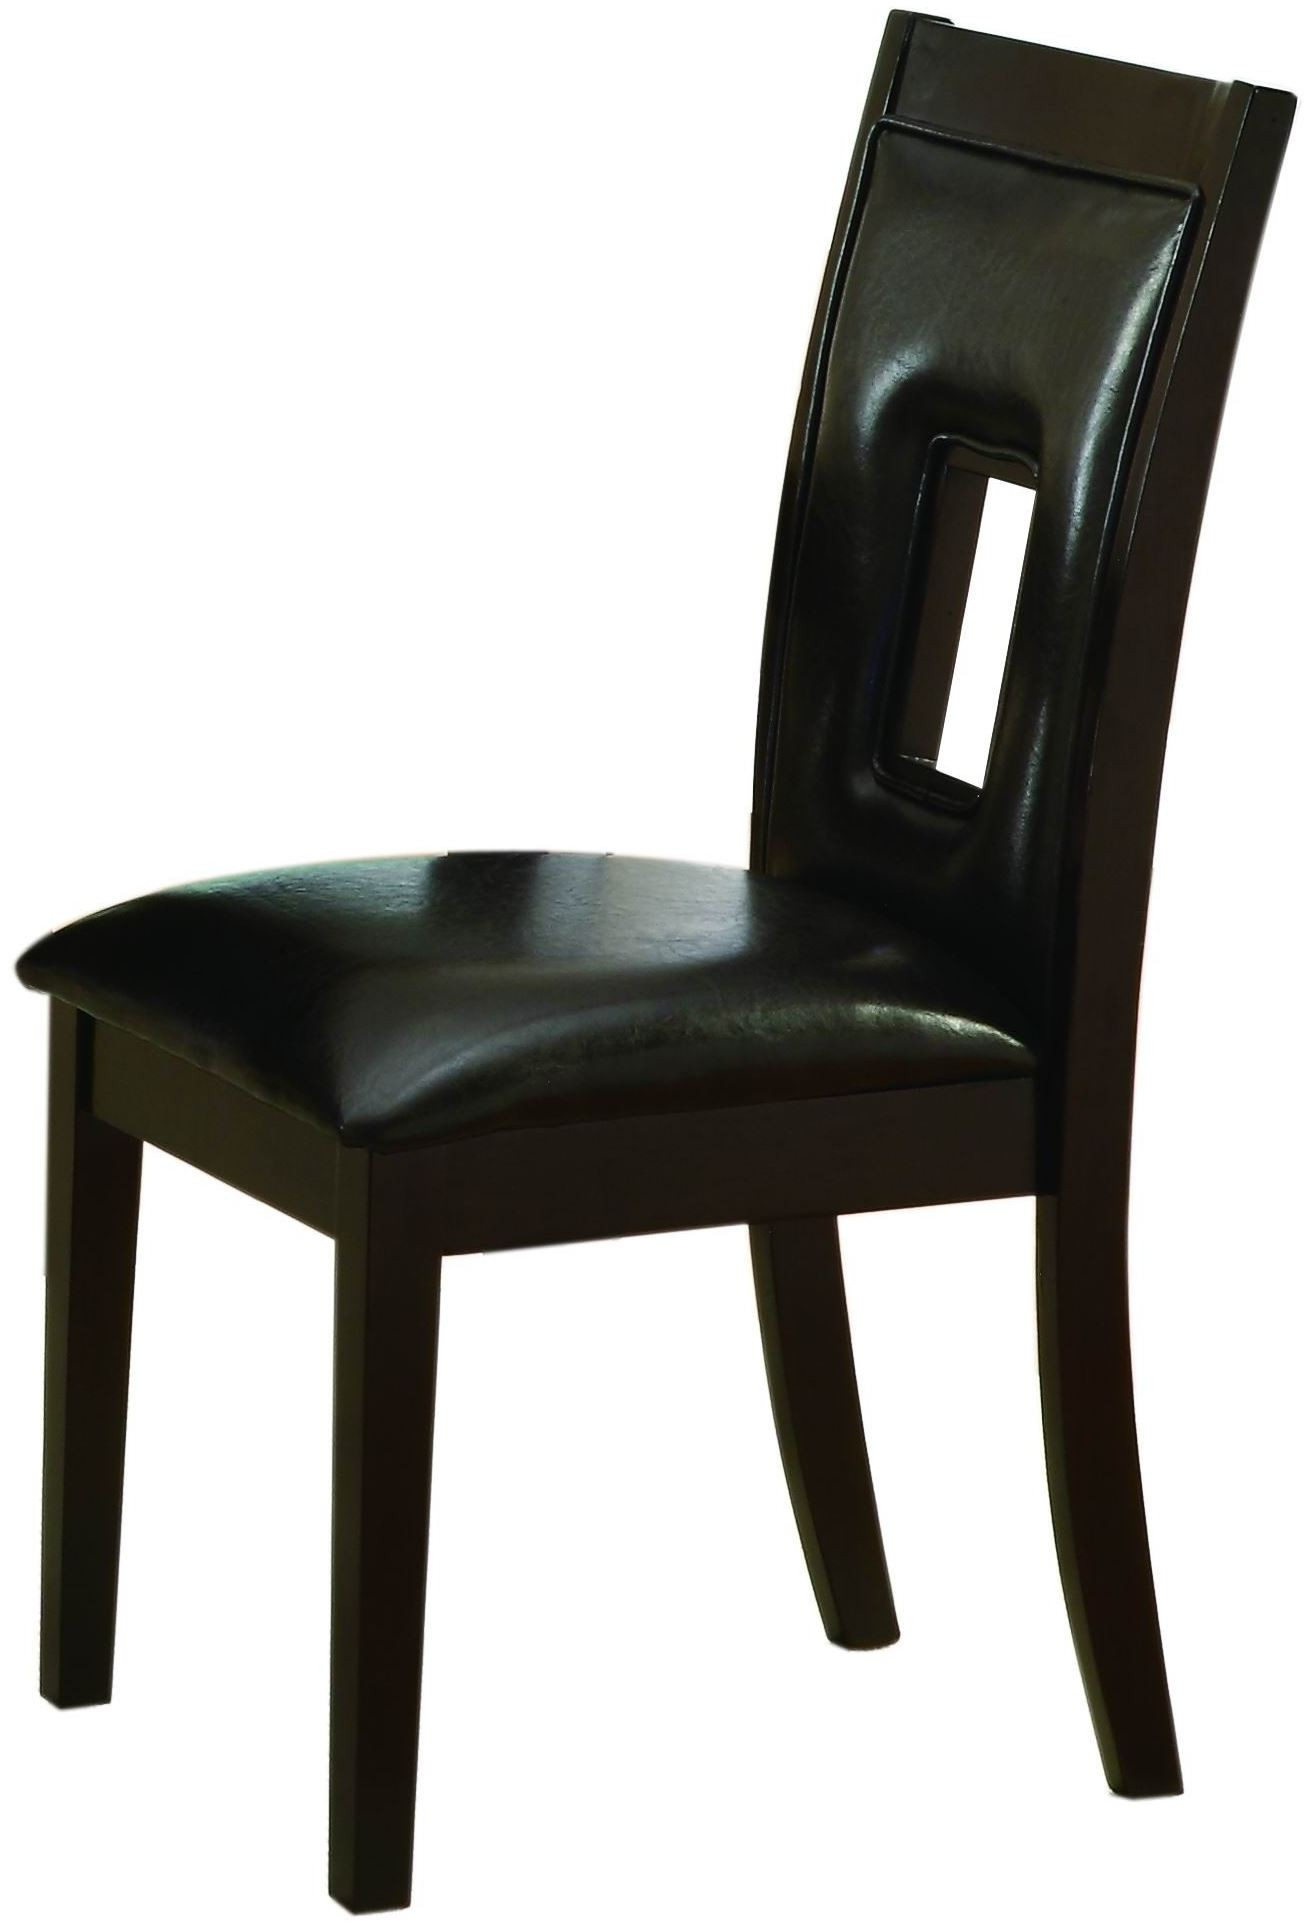 Clean Room Chair Specifications